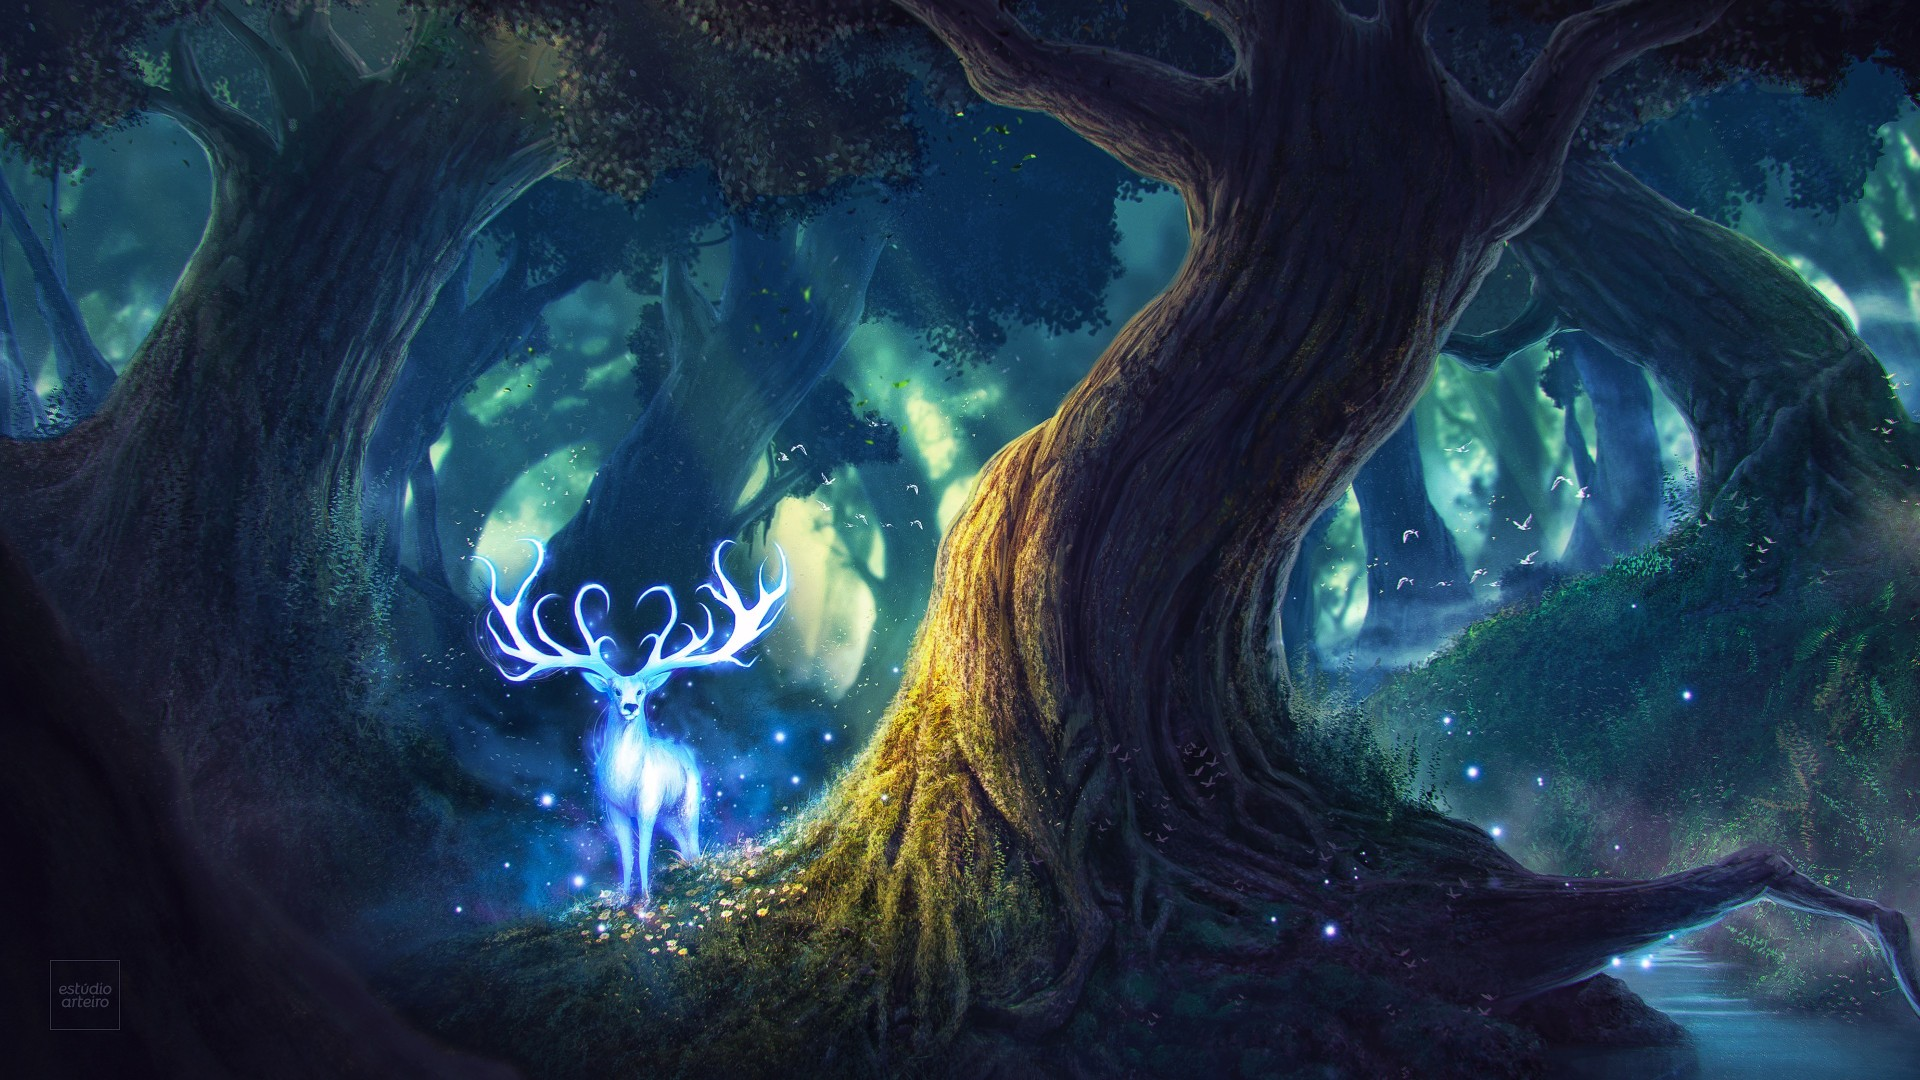 Wallpaper Full Hd Abstract Fairy Deer 4k Wallpapers Hd Wallpapers Id 20897